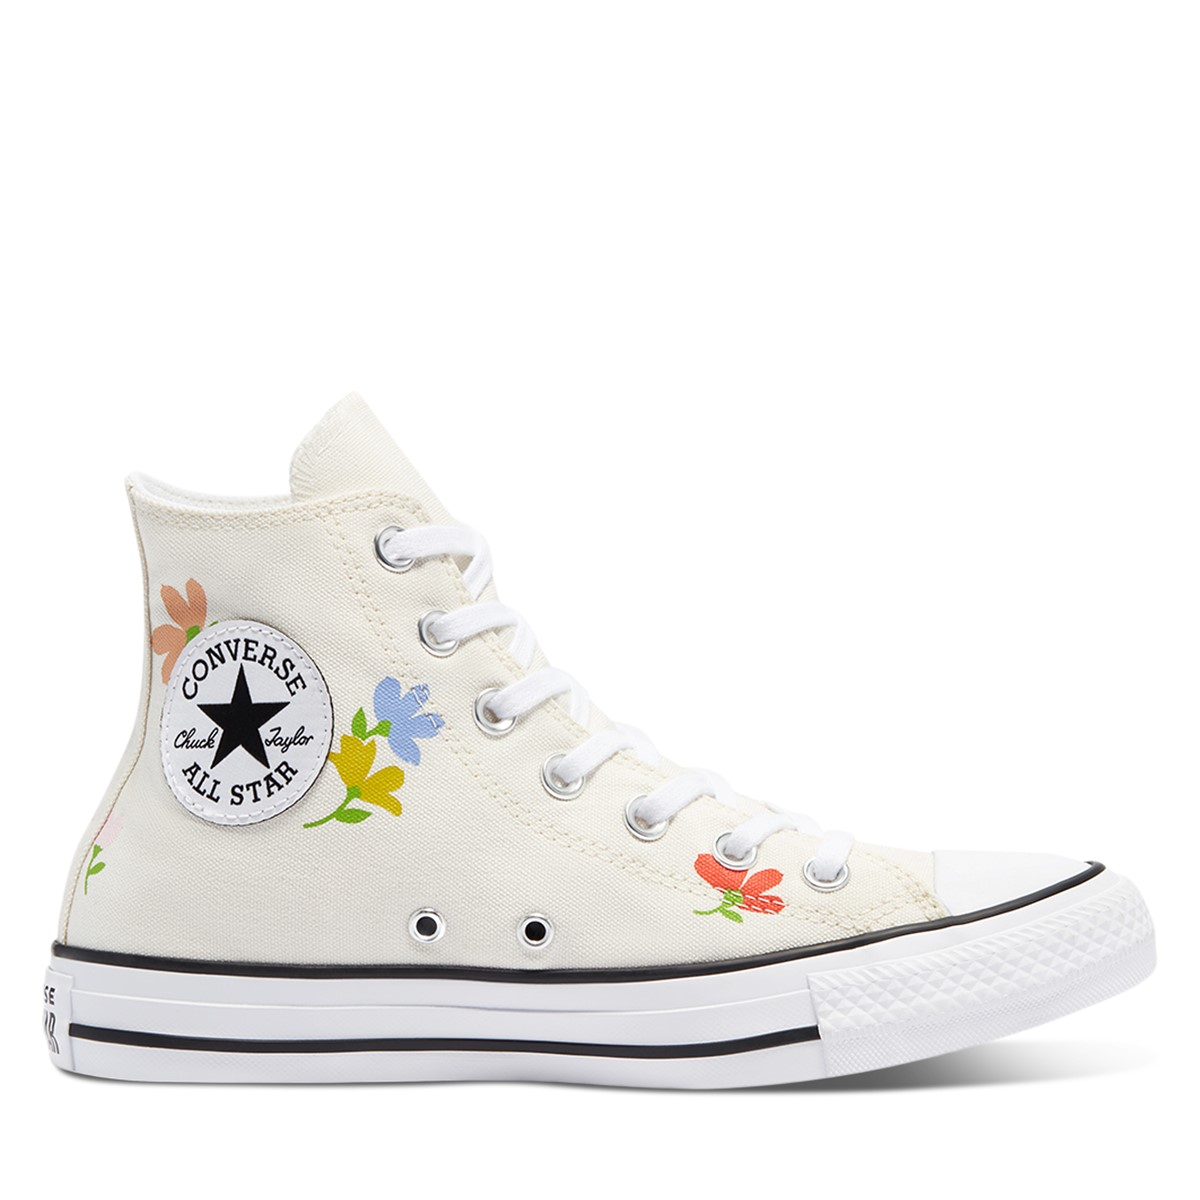 Women's Floral Print Chuck Taylor All Star Hi Sneakers in Cream